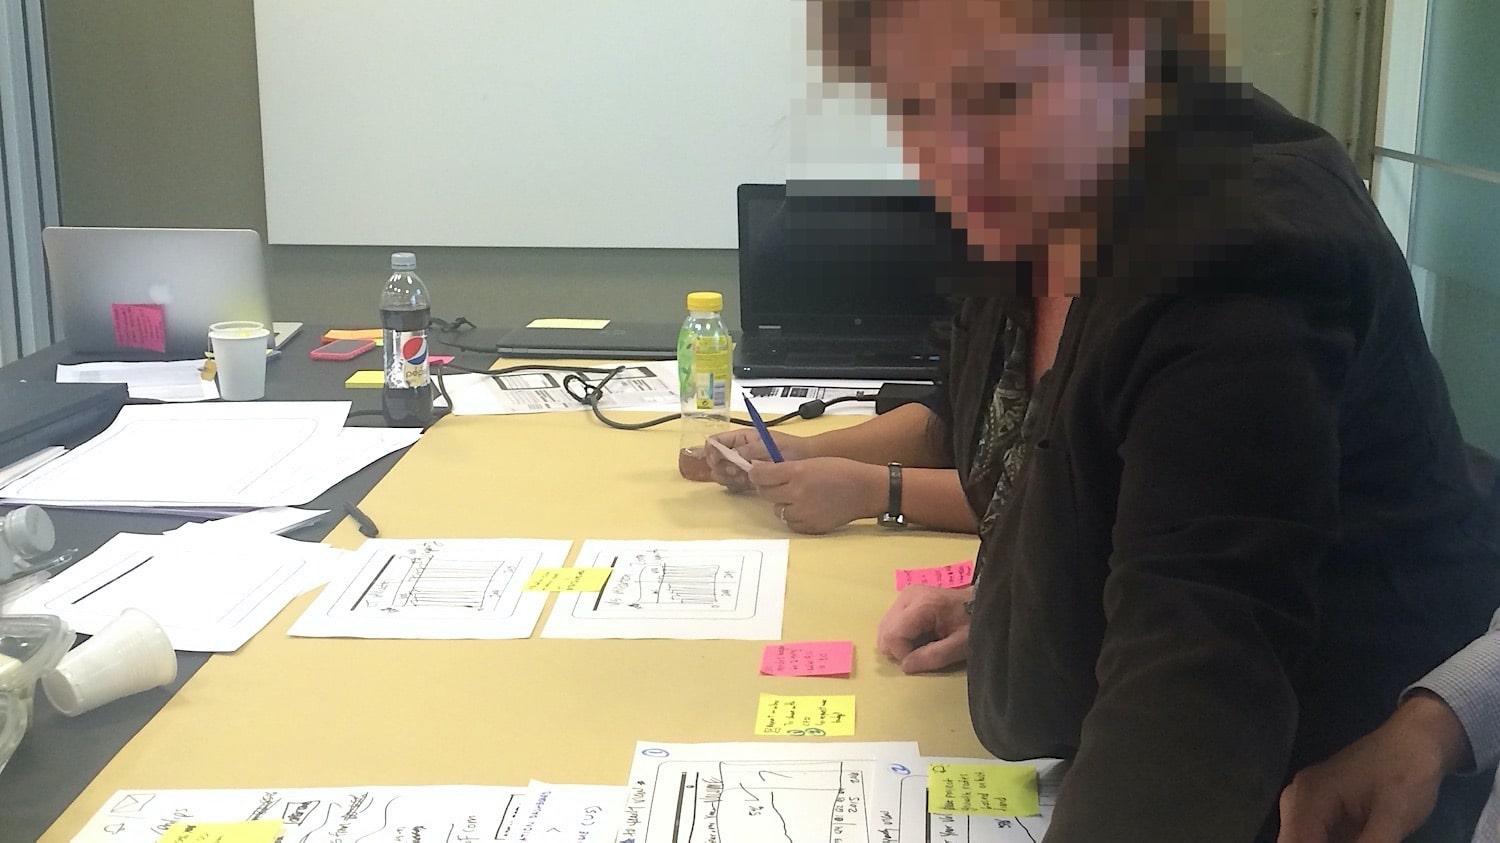 stakeholder providing ideas about the dashboard during an ideation workshop